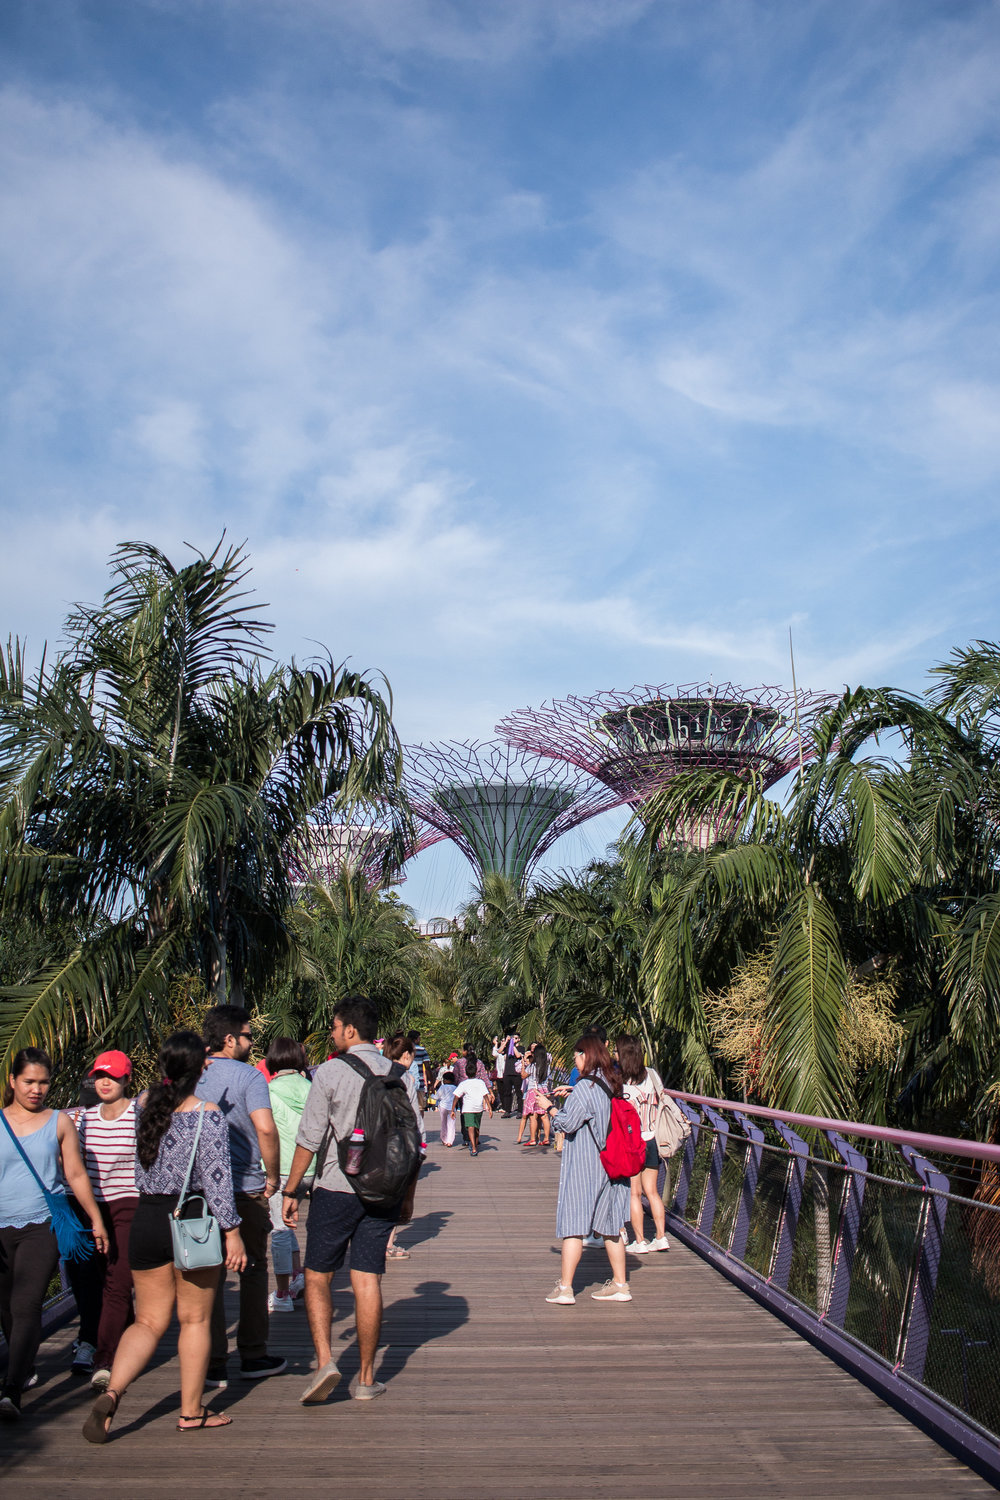 Jette explores Gardens by the Bay, Singapore